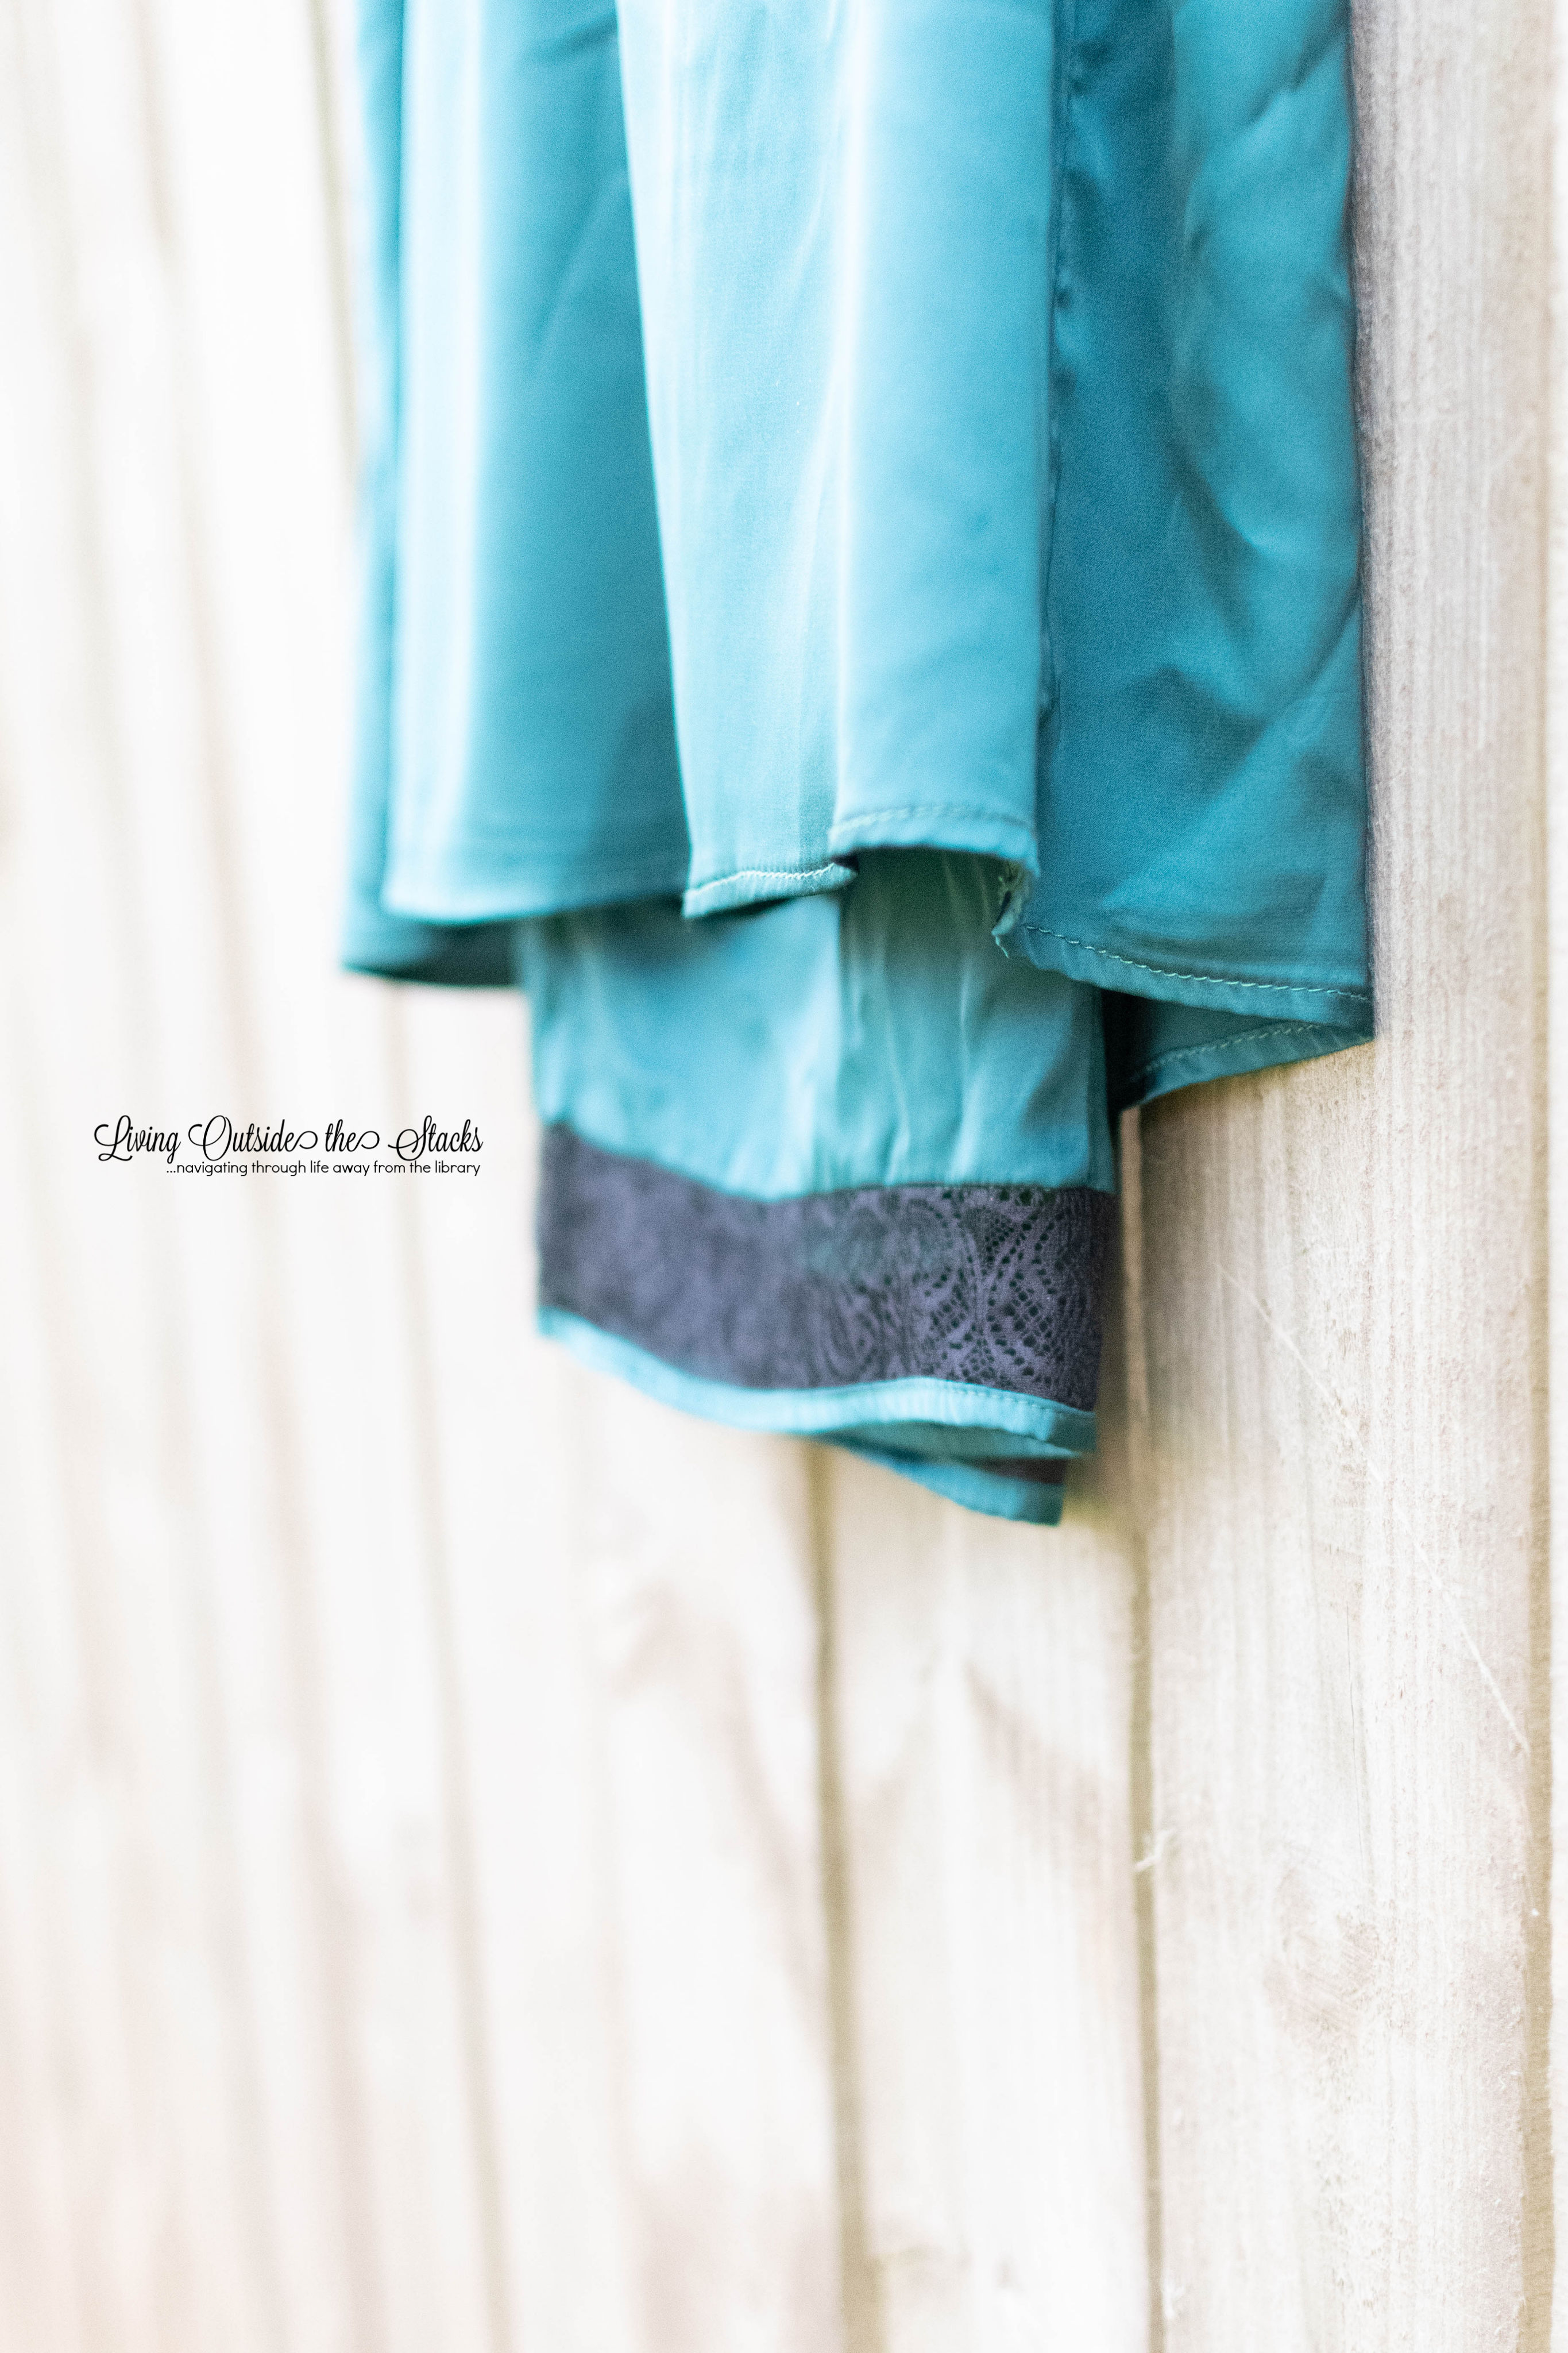 Identity Lingerie Product Review {living outside the stacks}